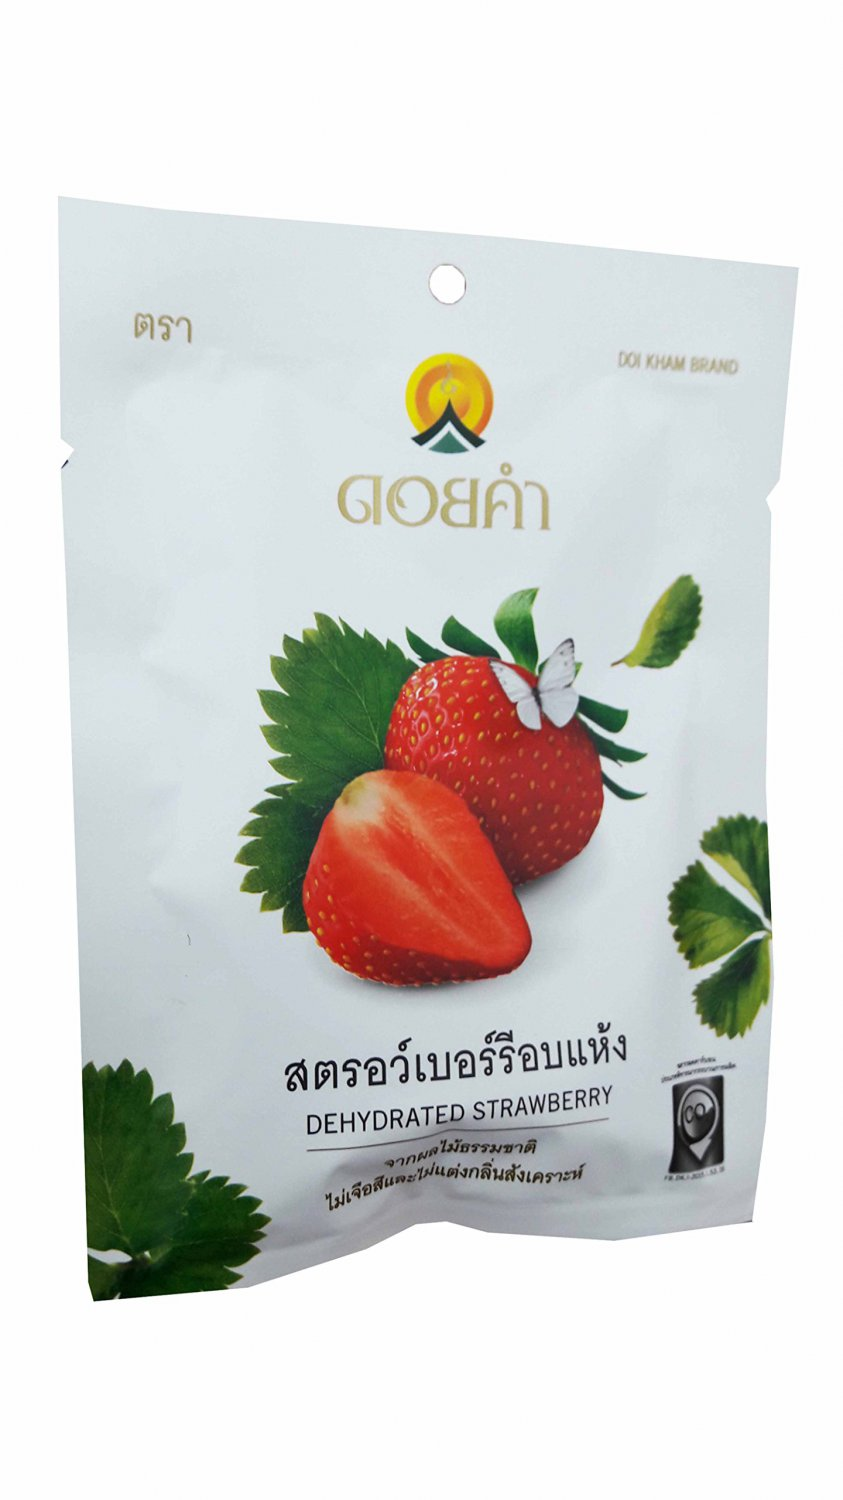 7 Packs of Dehydrated Strawberry Made From Real Strawberry, Delicious